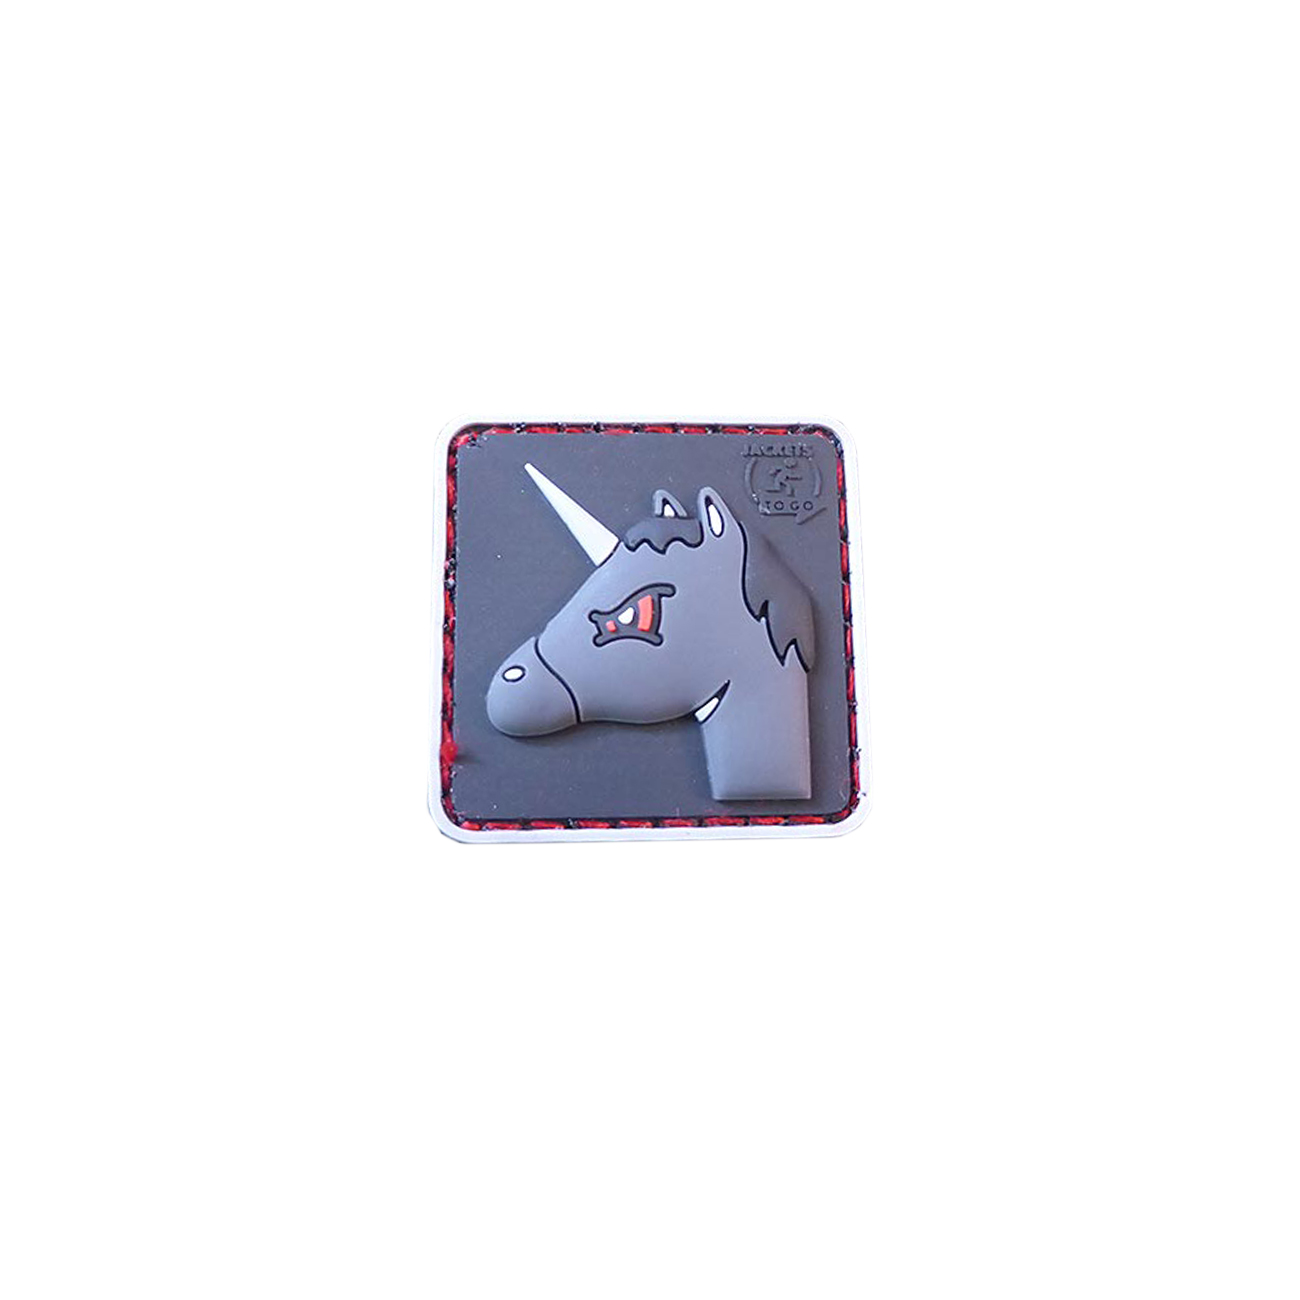 JTG 3D Rubber Patch Angry Unicorn 0